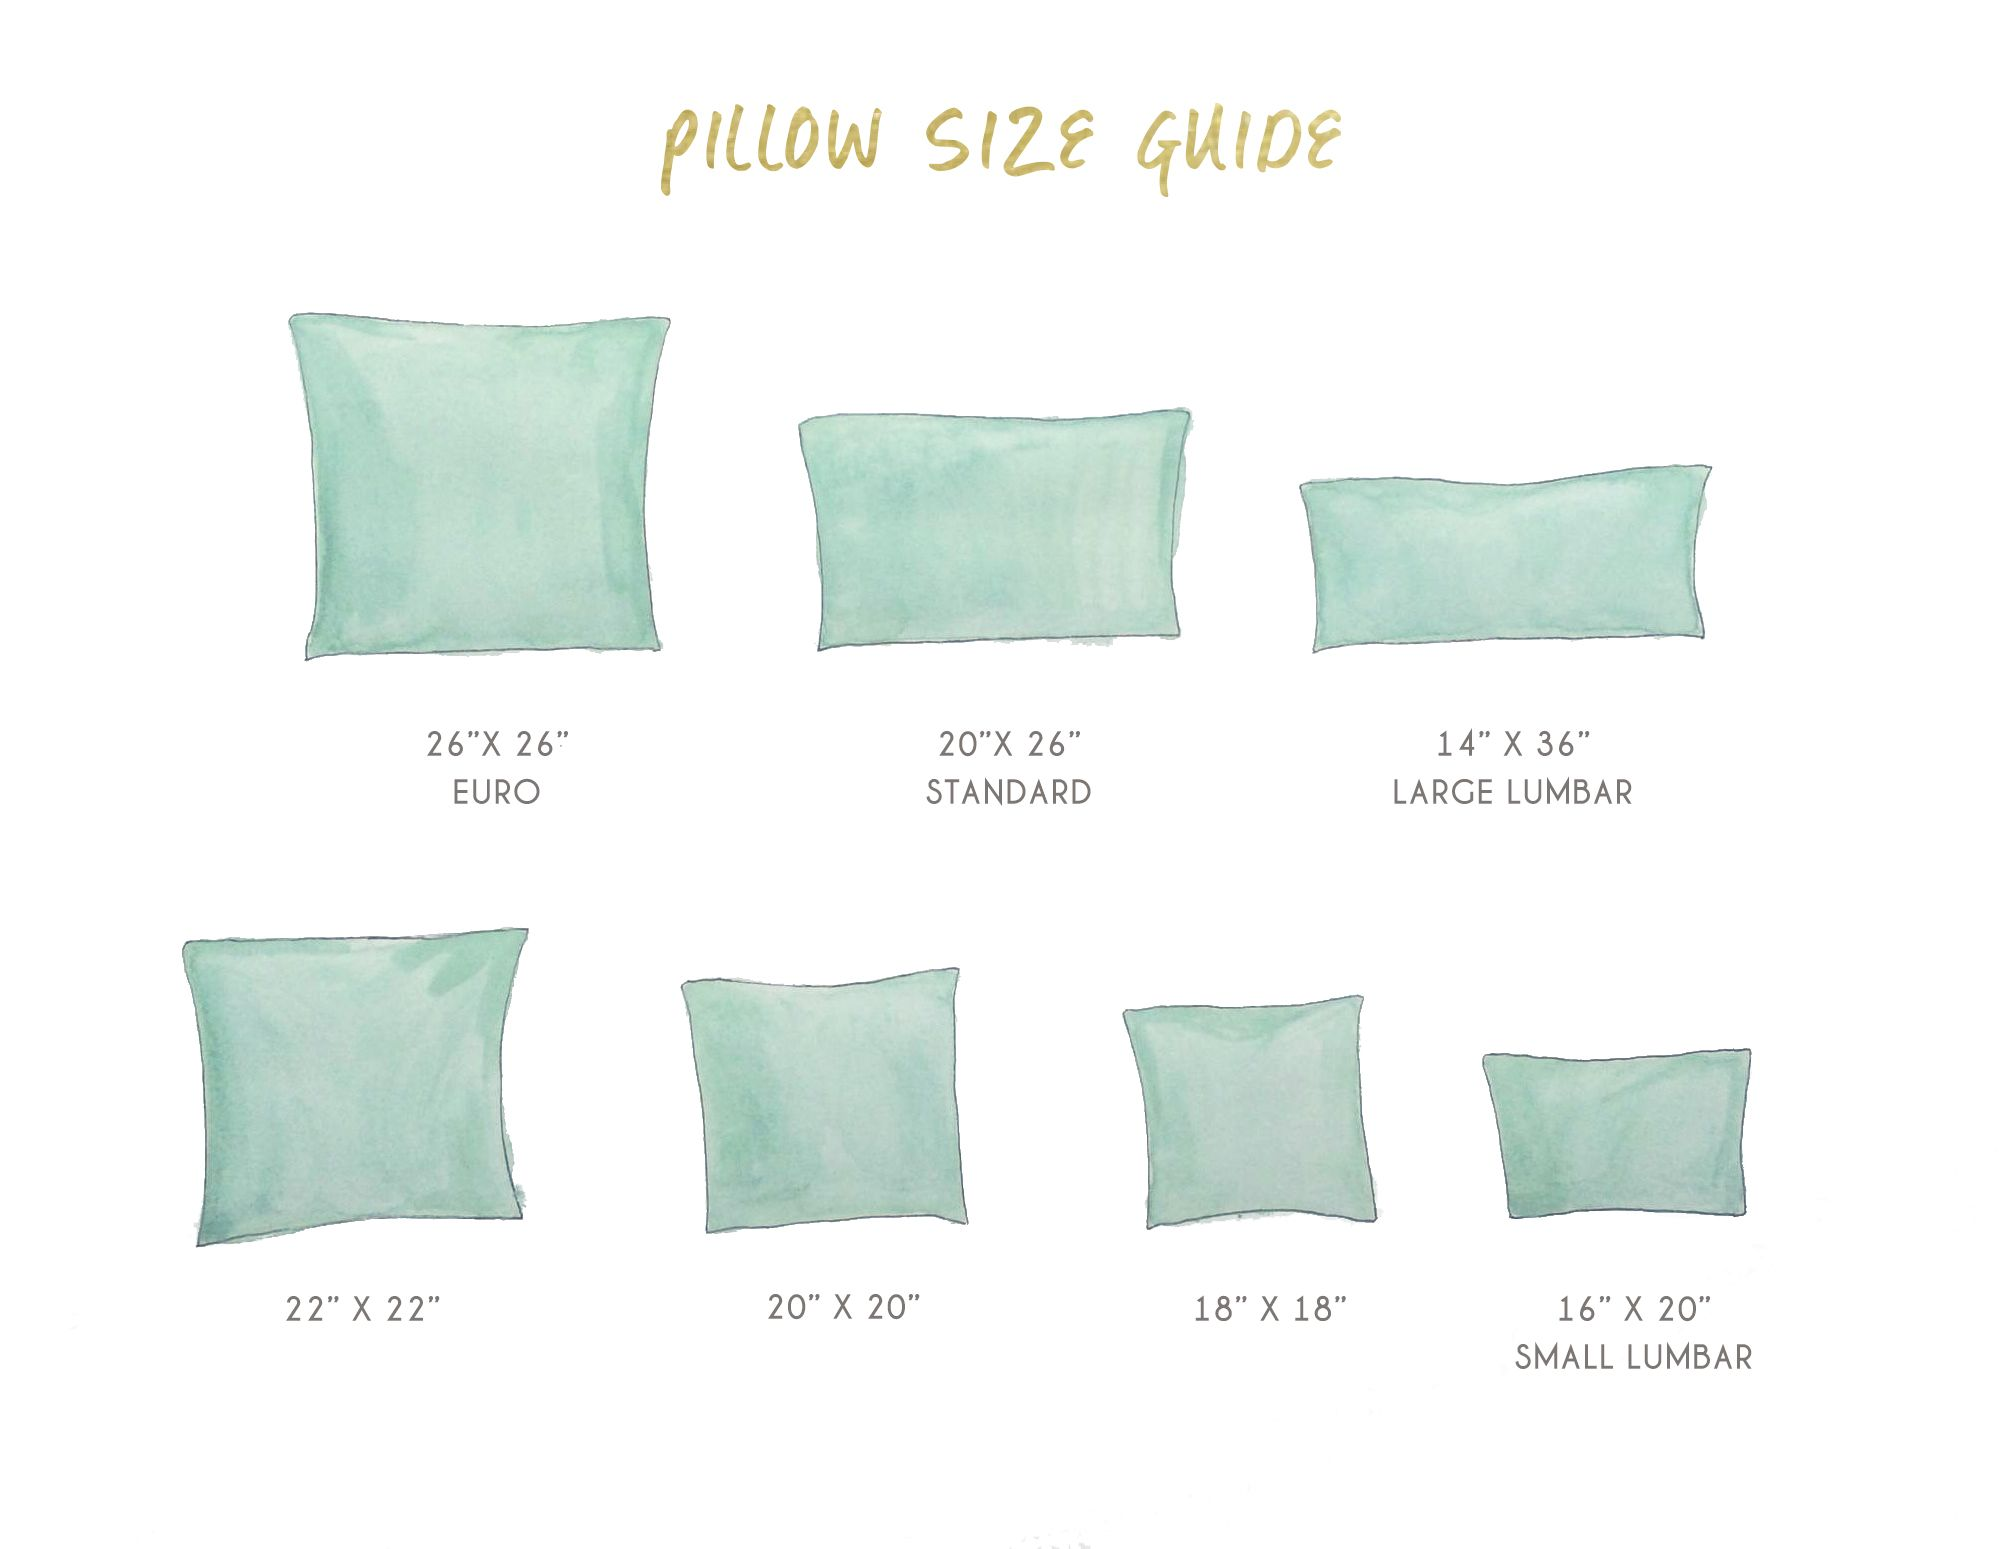 Standard Decorative Pillow Measurements : Sofa Pillow Sizes Pillows 101 How To Choose Arrange Throw - TheSofa